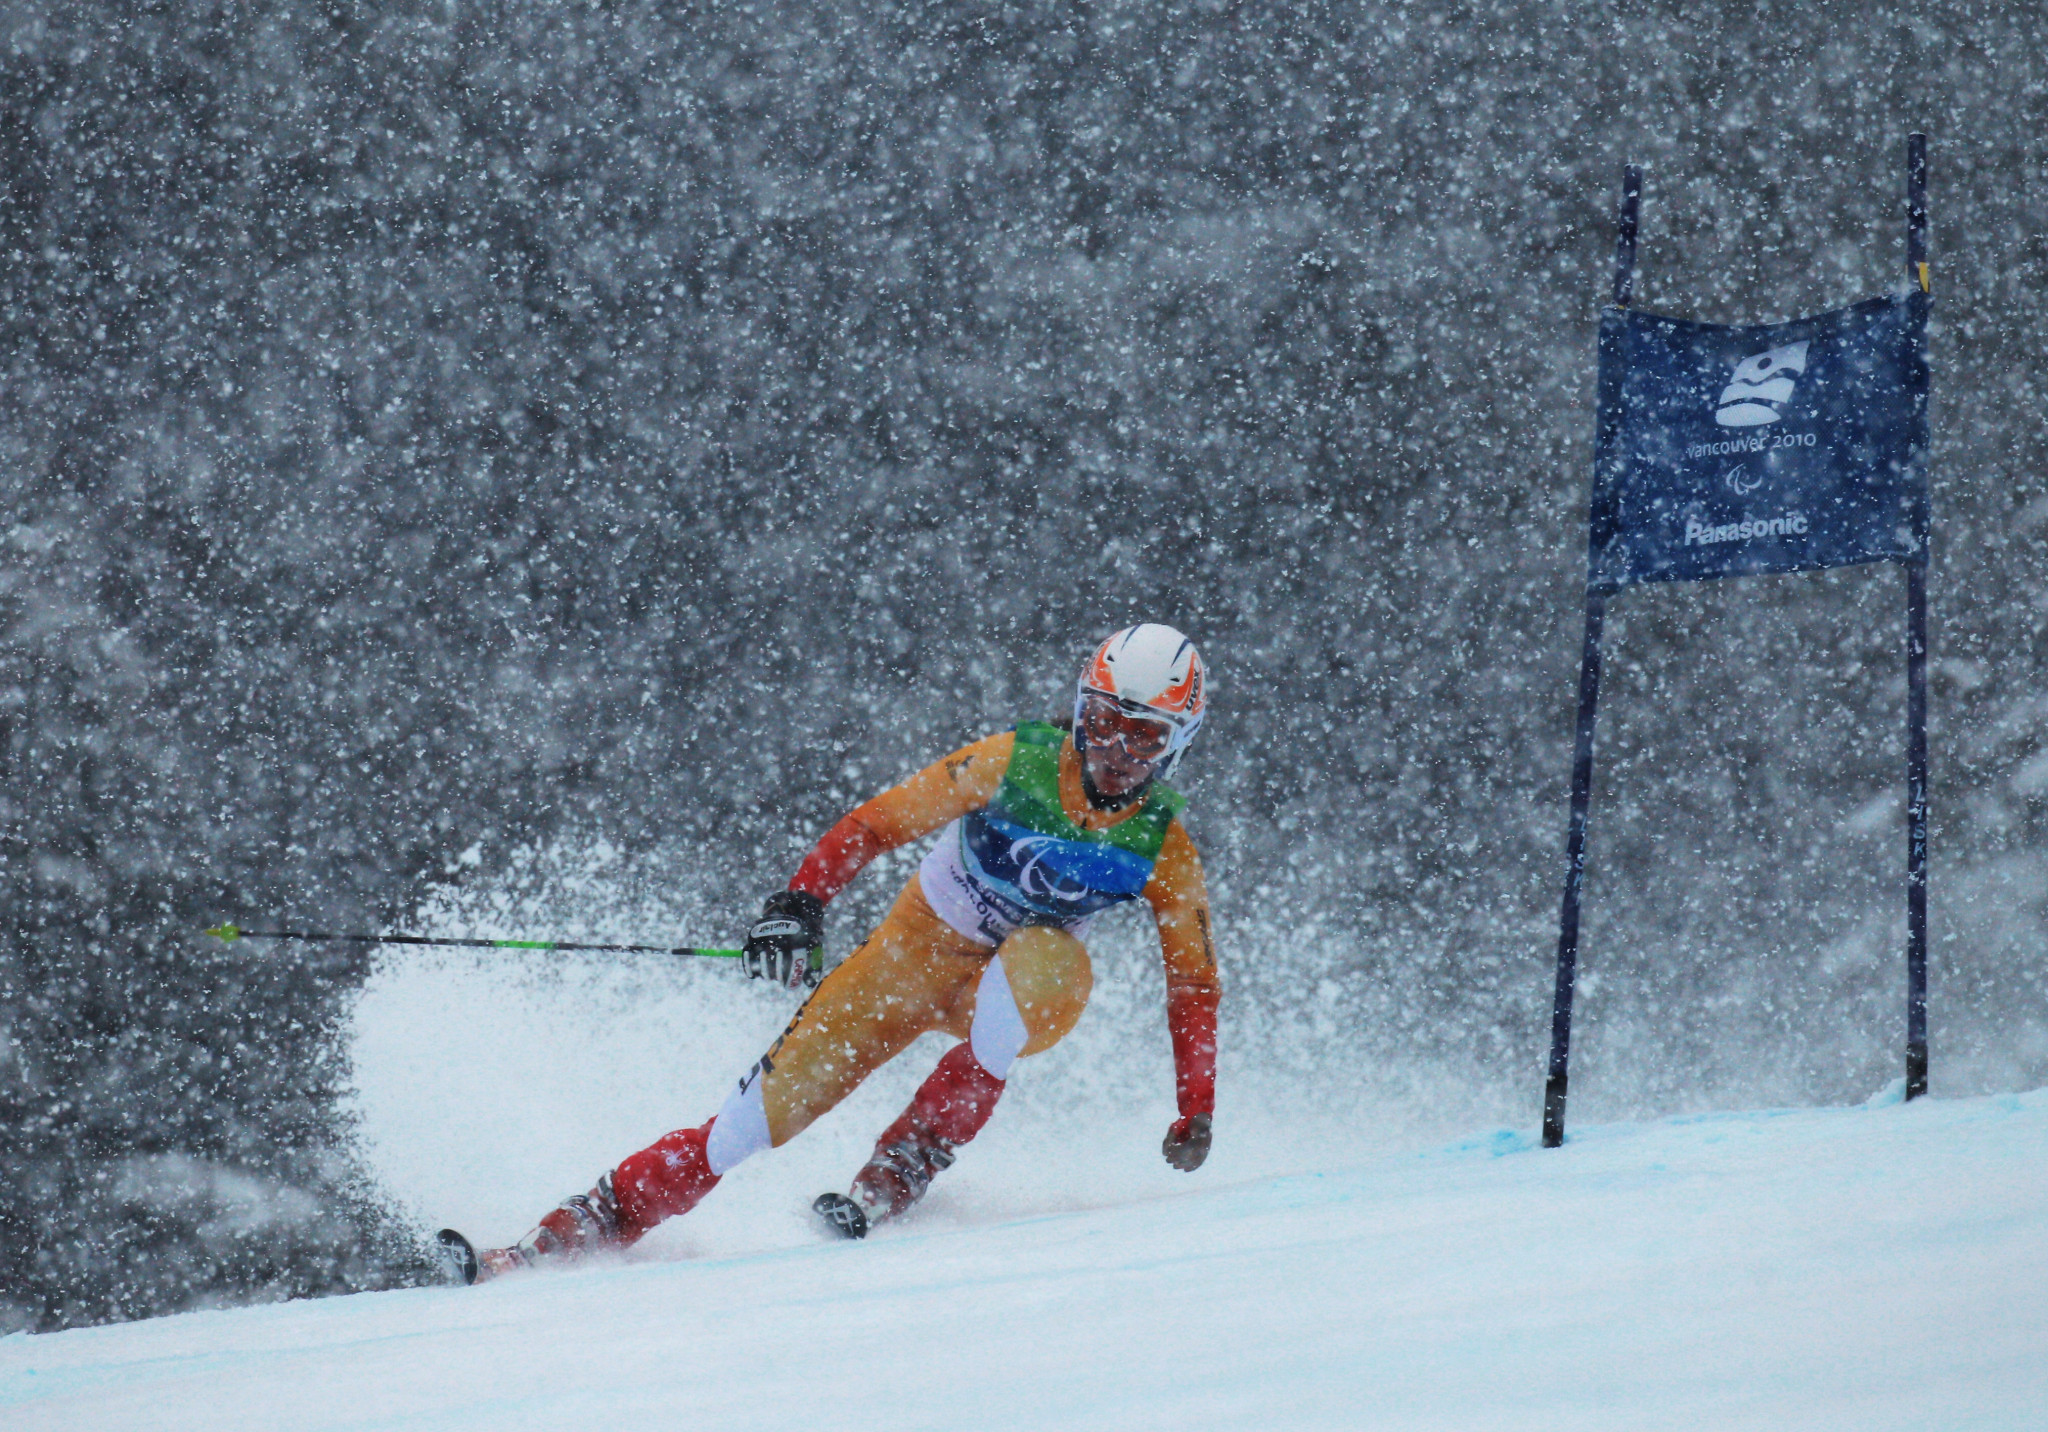 Canada's best Winter Paralympic performance came at Vancouver 2010 as the host nation won 10 gold medals ©Getty Images